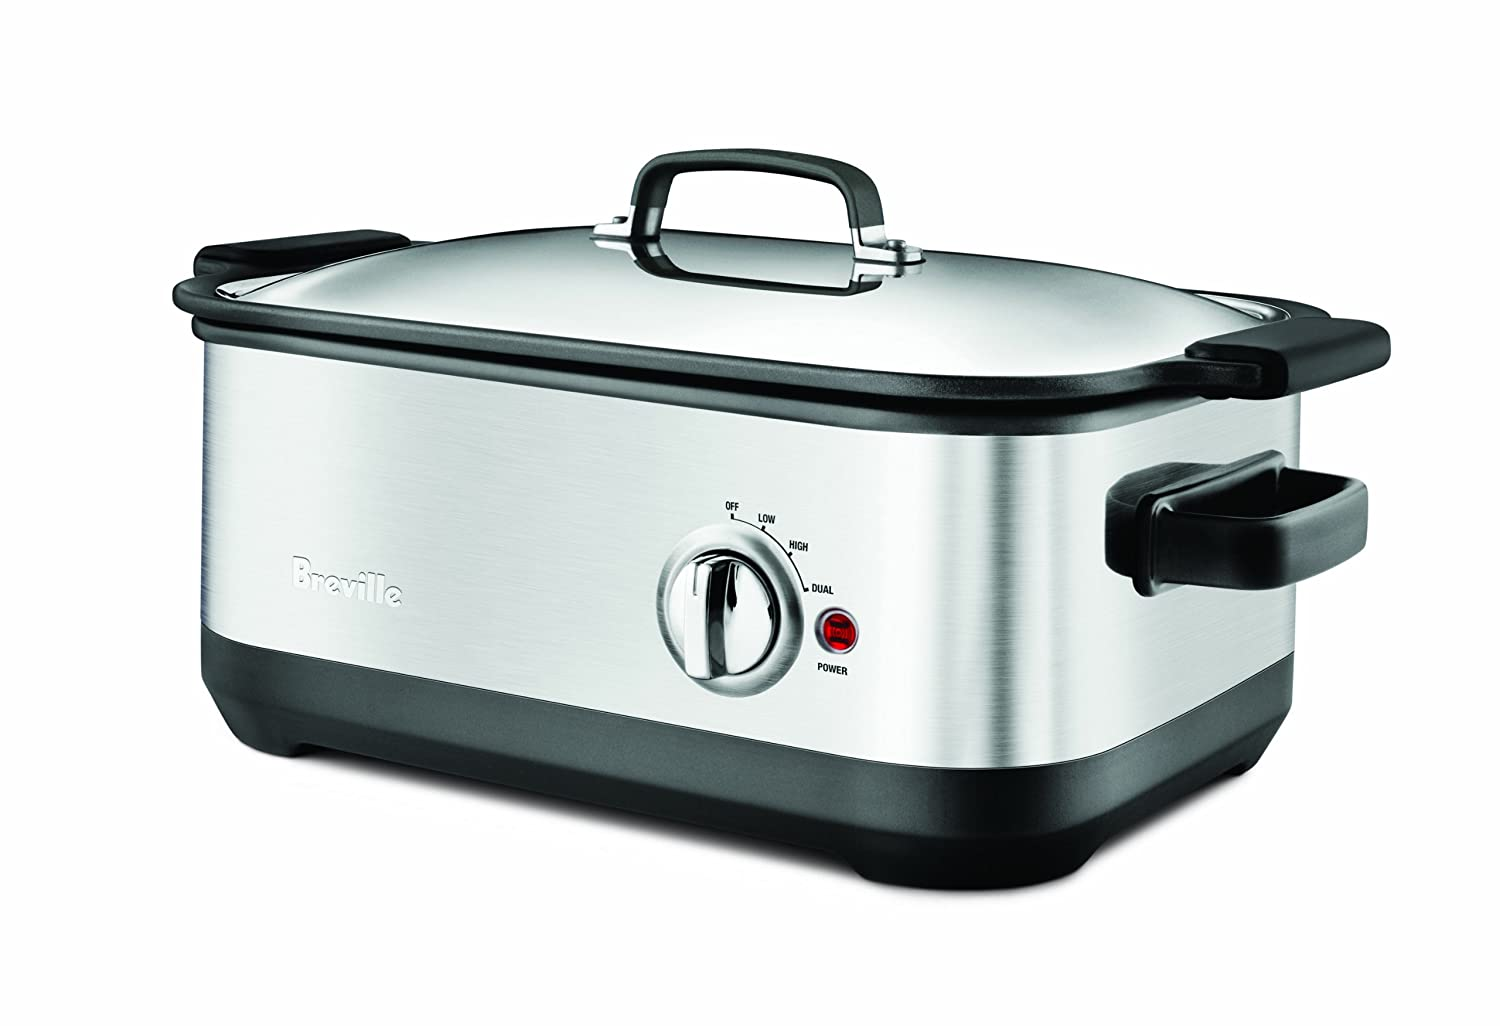 Awesome Breville BSC560XL Stainless-Steel 7-Quart Slow Cooker with EasySear Insert